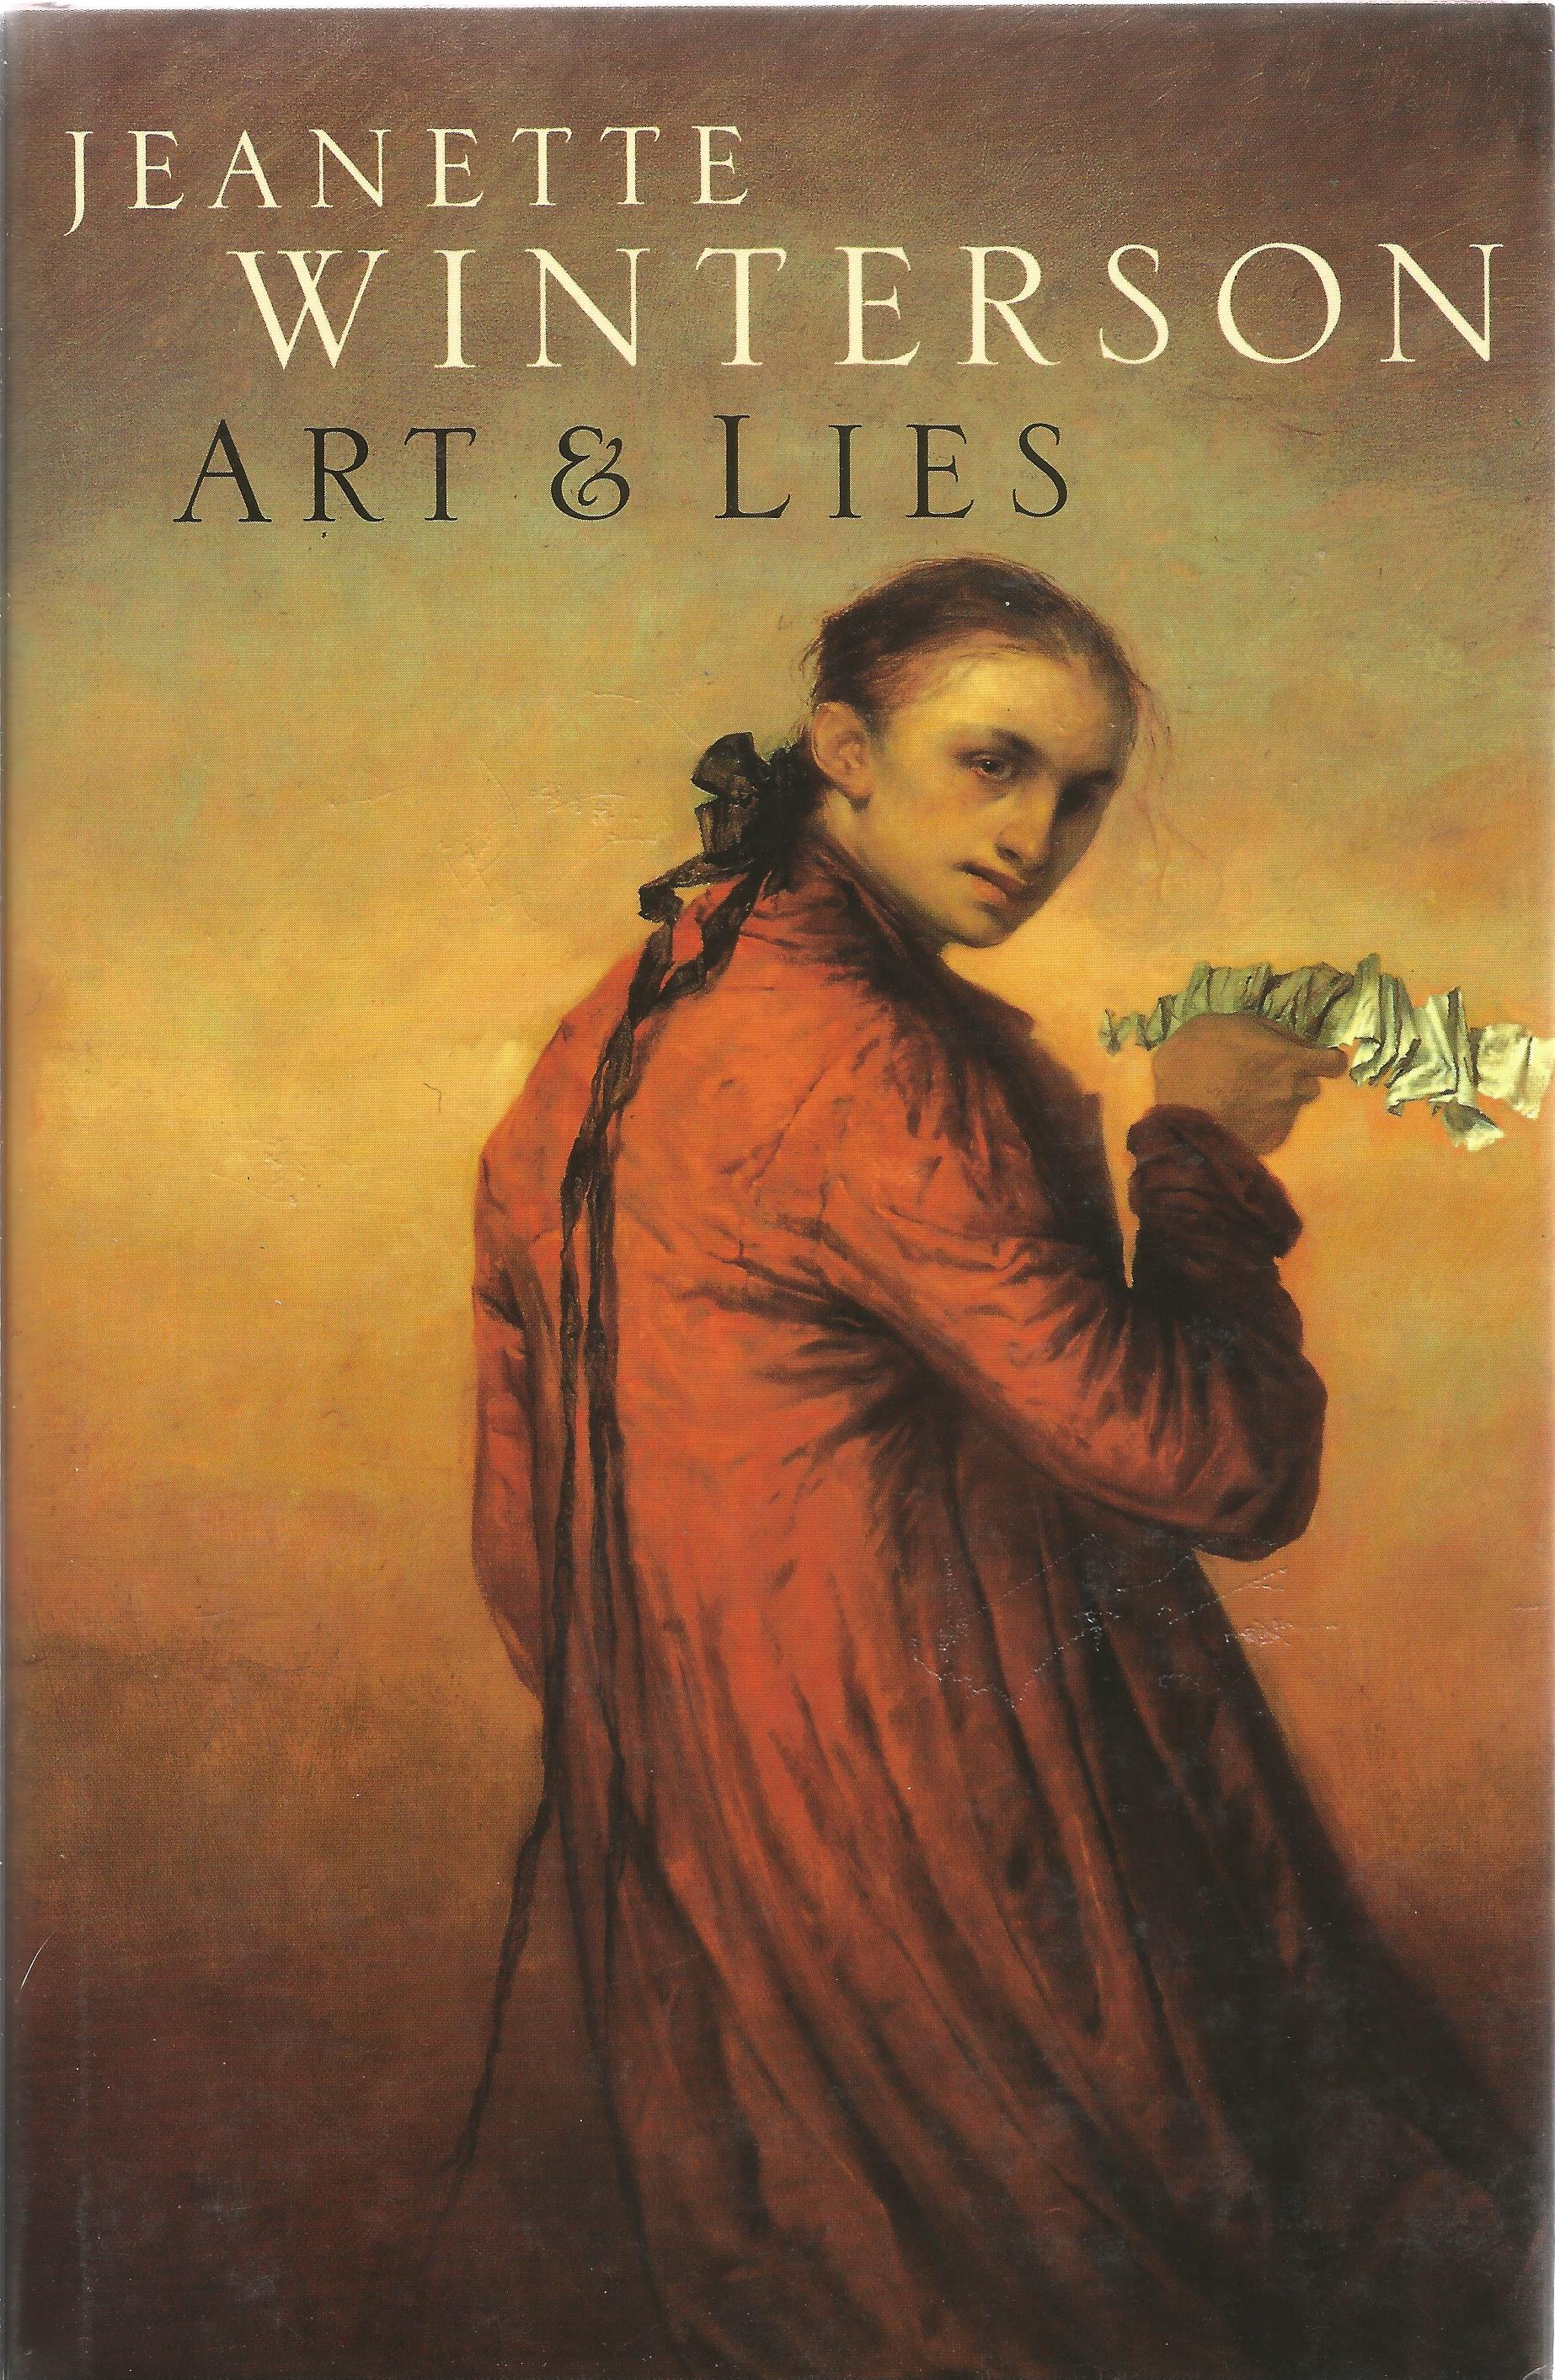 Jeanette Winterson Hardback Book Art & Lies signed by the Author on the Title Page dust cover and